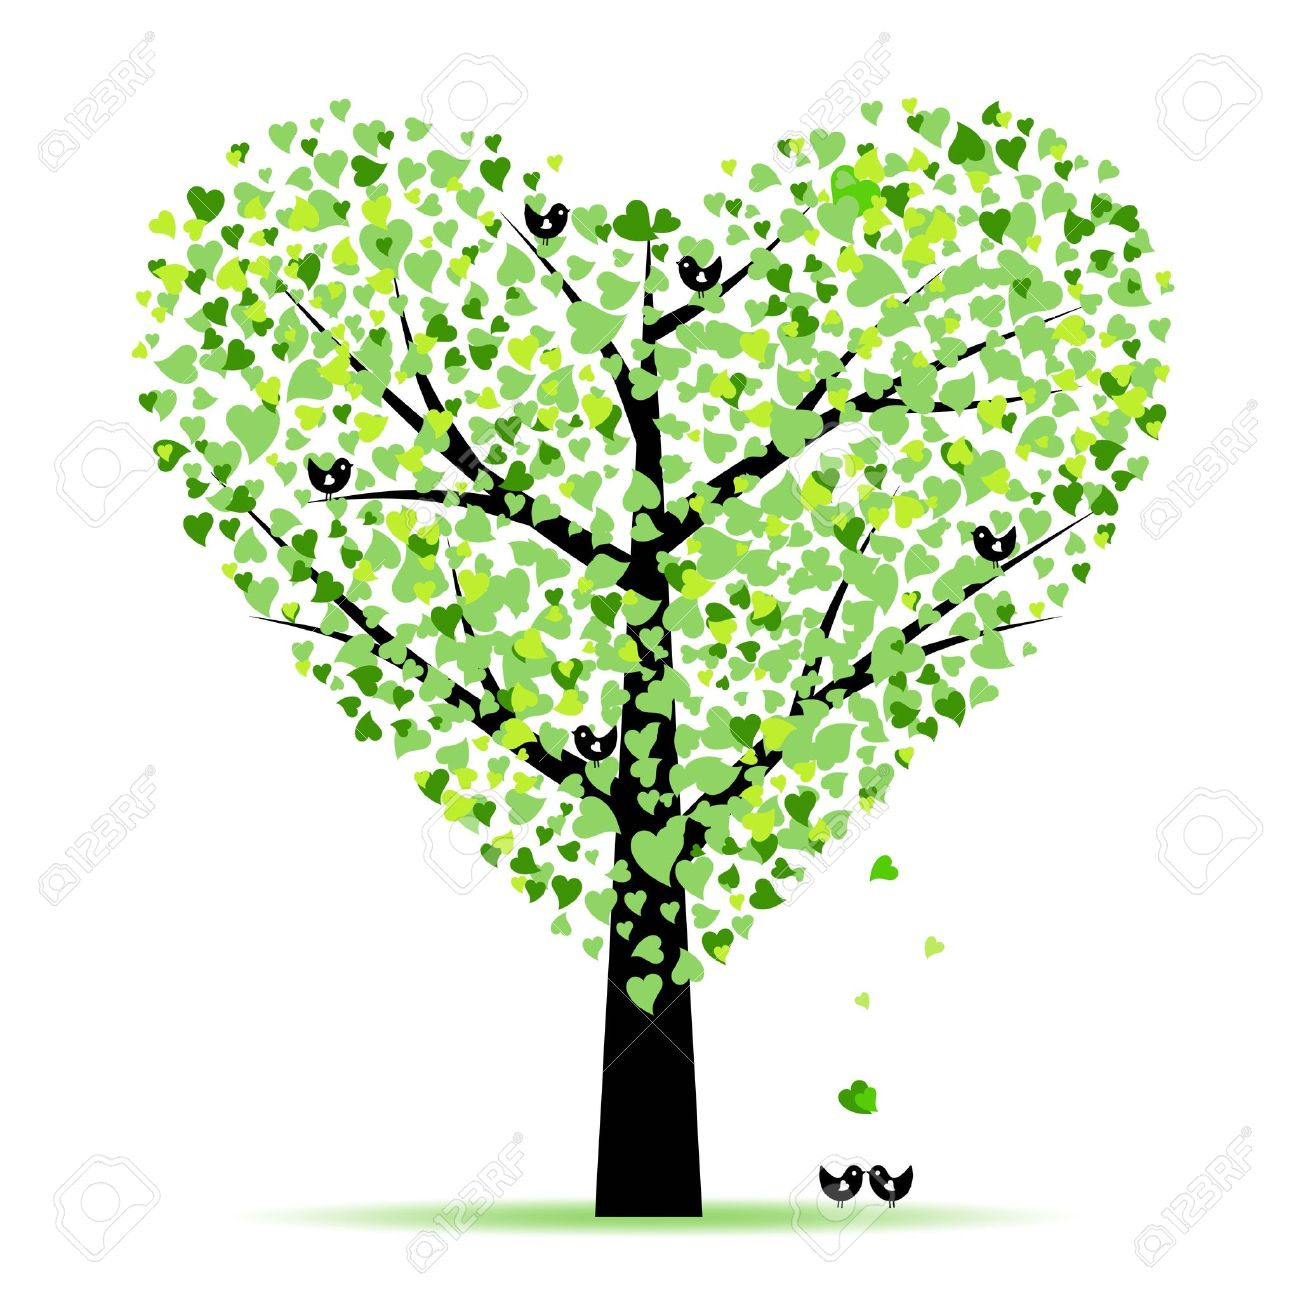 Clipart hearts in tree png black and white library Tree clipart hearts - ClipartFest png black and white library